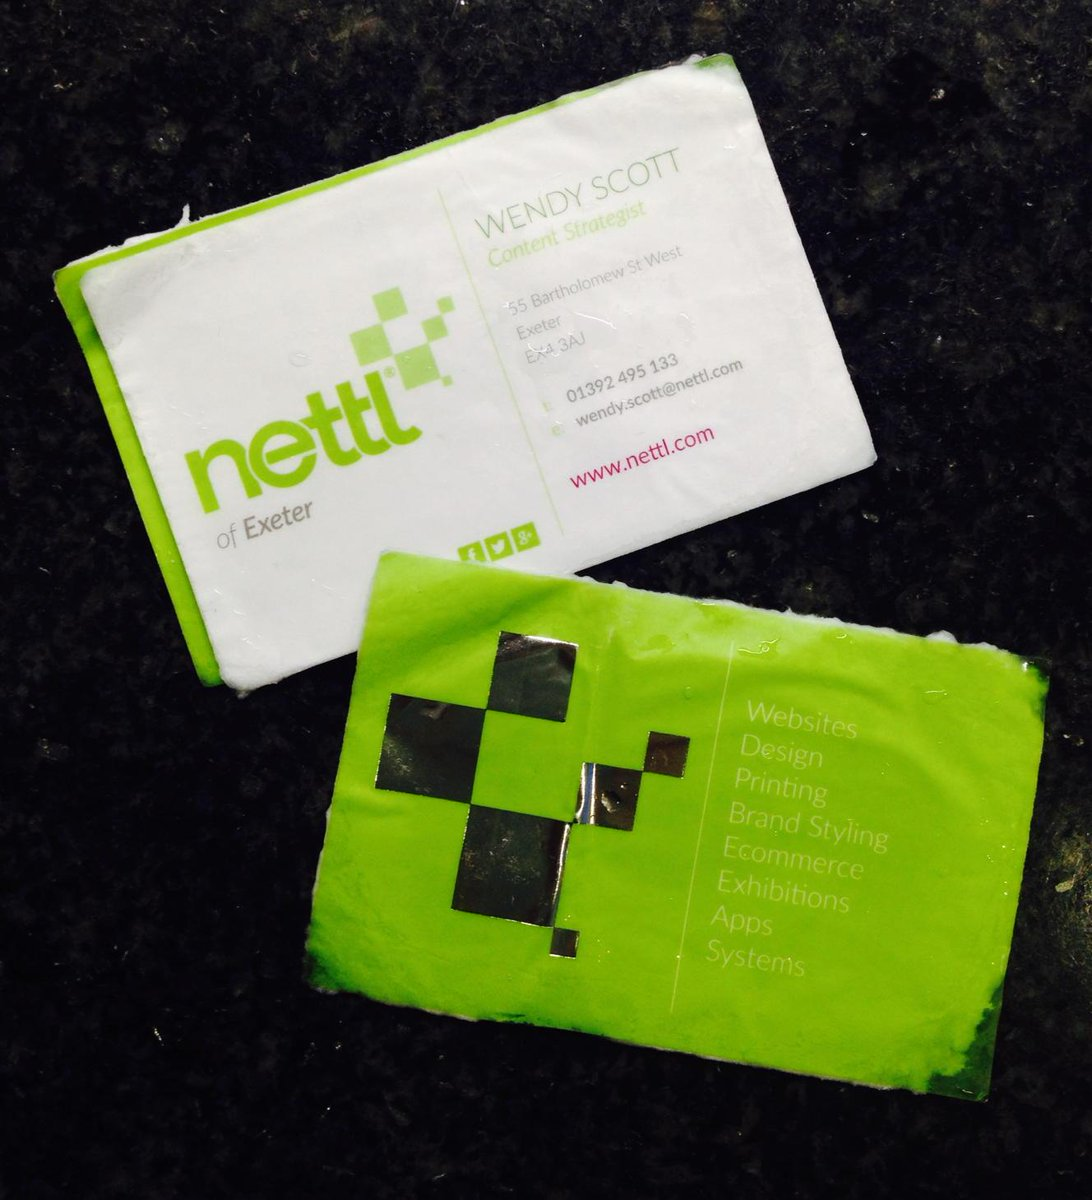 Nettl of exeter on twitter quality business cards despite washing nettl of exeter on twitter quality business cards despite washing machine cycle oops devonhour exeter printing devonhour httptgvto6xbc0d reheart Images